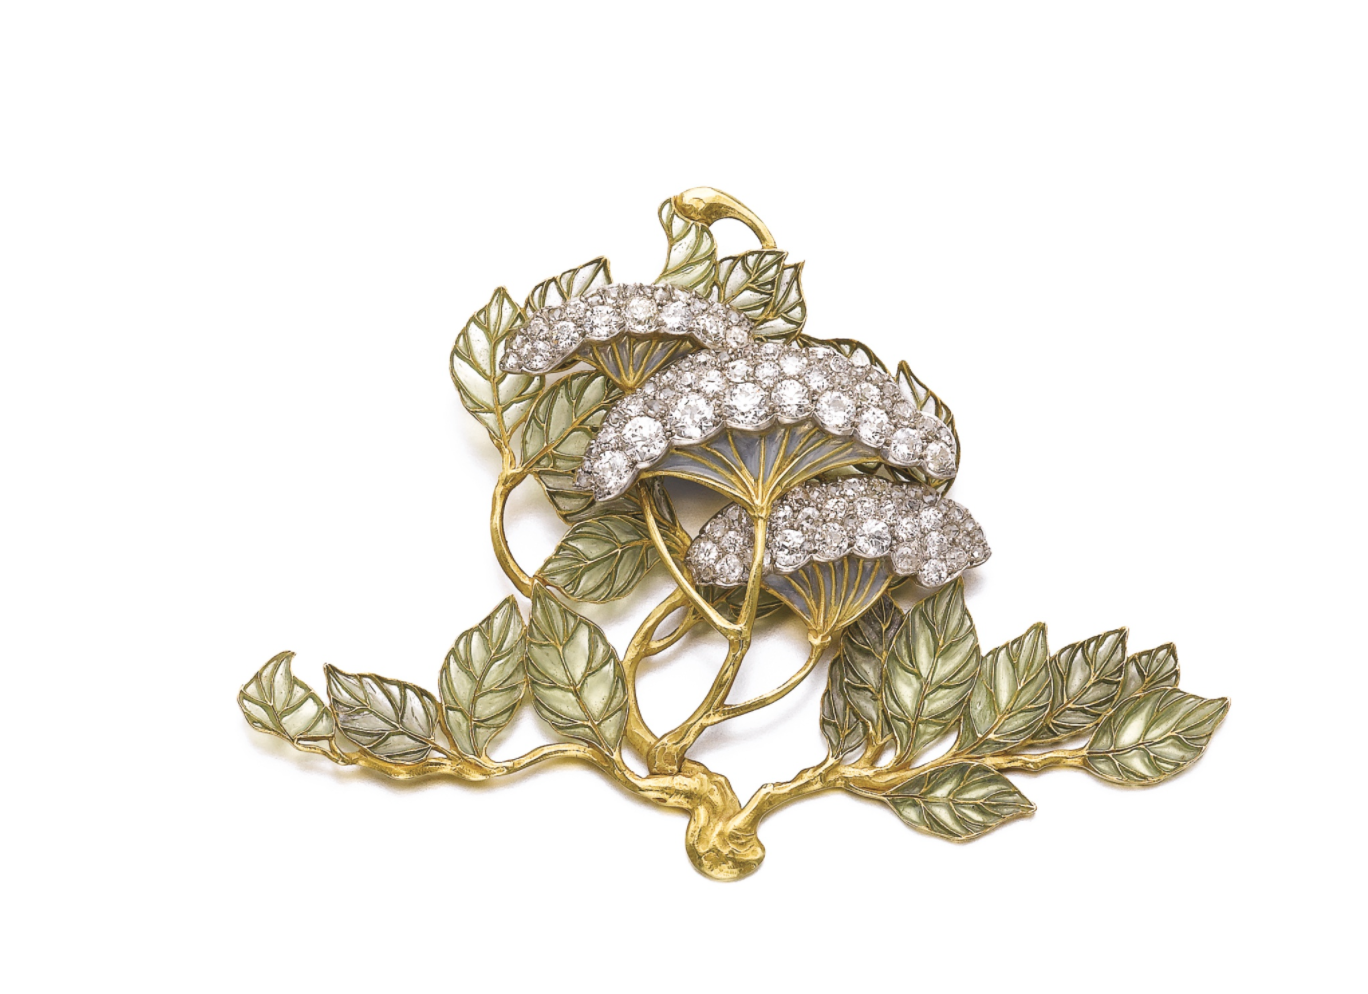 Enamel and diamond brooch, 'Hydrangea Petiolaris', René Lalique, circa 1900    Of floral and foliate design, the flowers set with circular-cut, cushion-shaped and rose diamonds, the leaves applied with light green plique-à-jour enamel, signed Lalique, brooch fitting detachable.    Enamel and diamond brooch, 'Hydrangea Petiolaris', René Lalique, circa 1900     Estimate: CHF    79,000 — 118,000    LOT SOLD November 2016.    212,500 CHF    (   Hammer Price with Buyer's Premium)     Photo Courtesy of Sotheby's